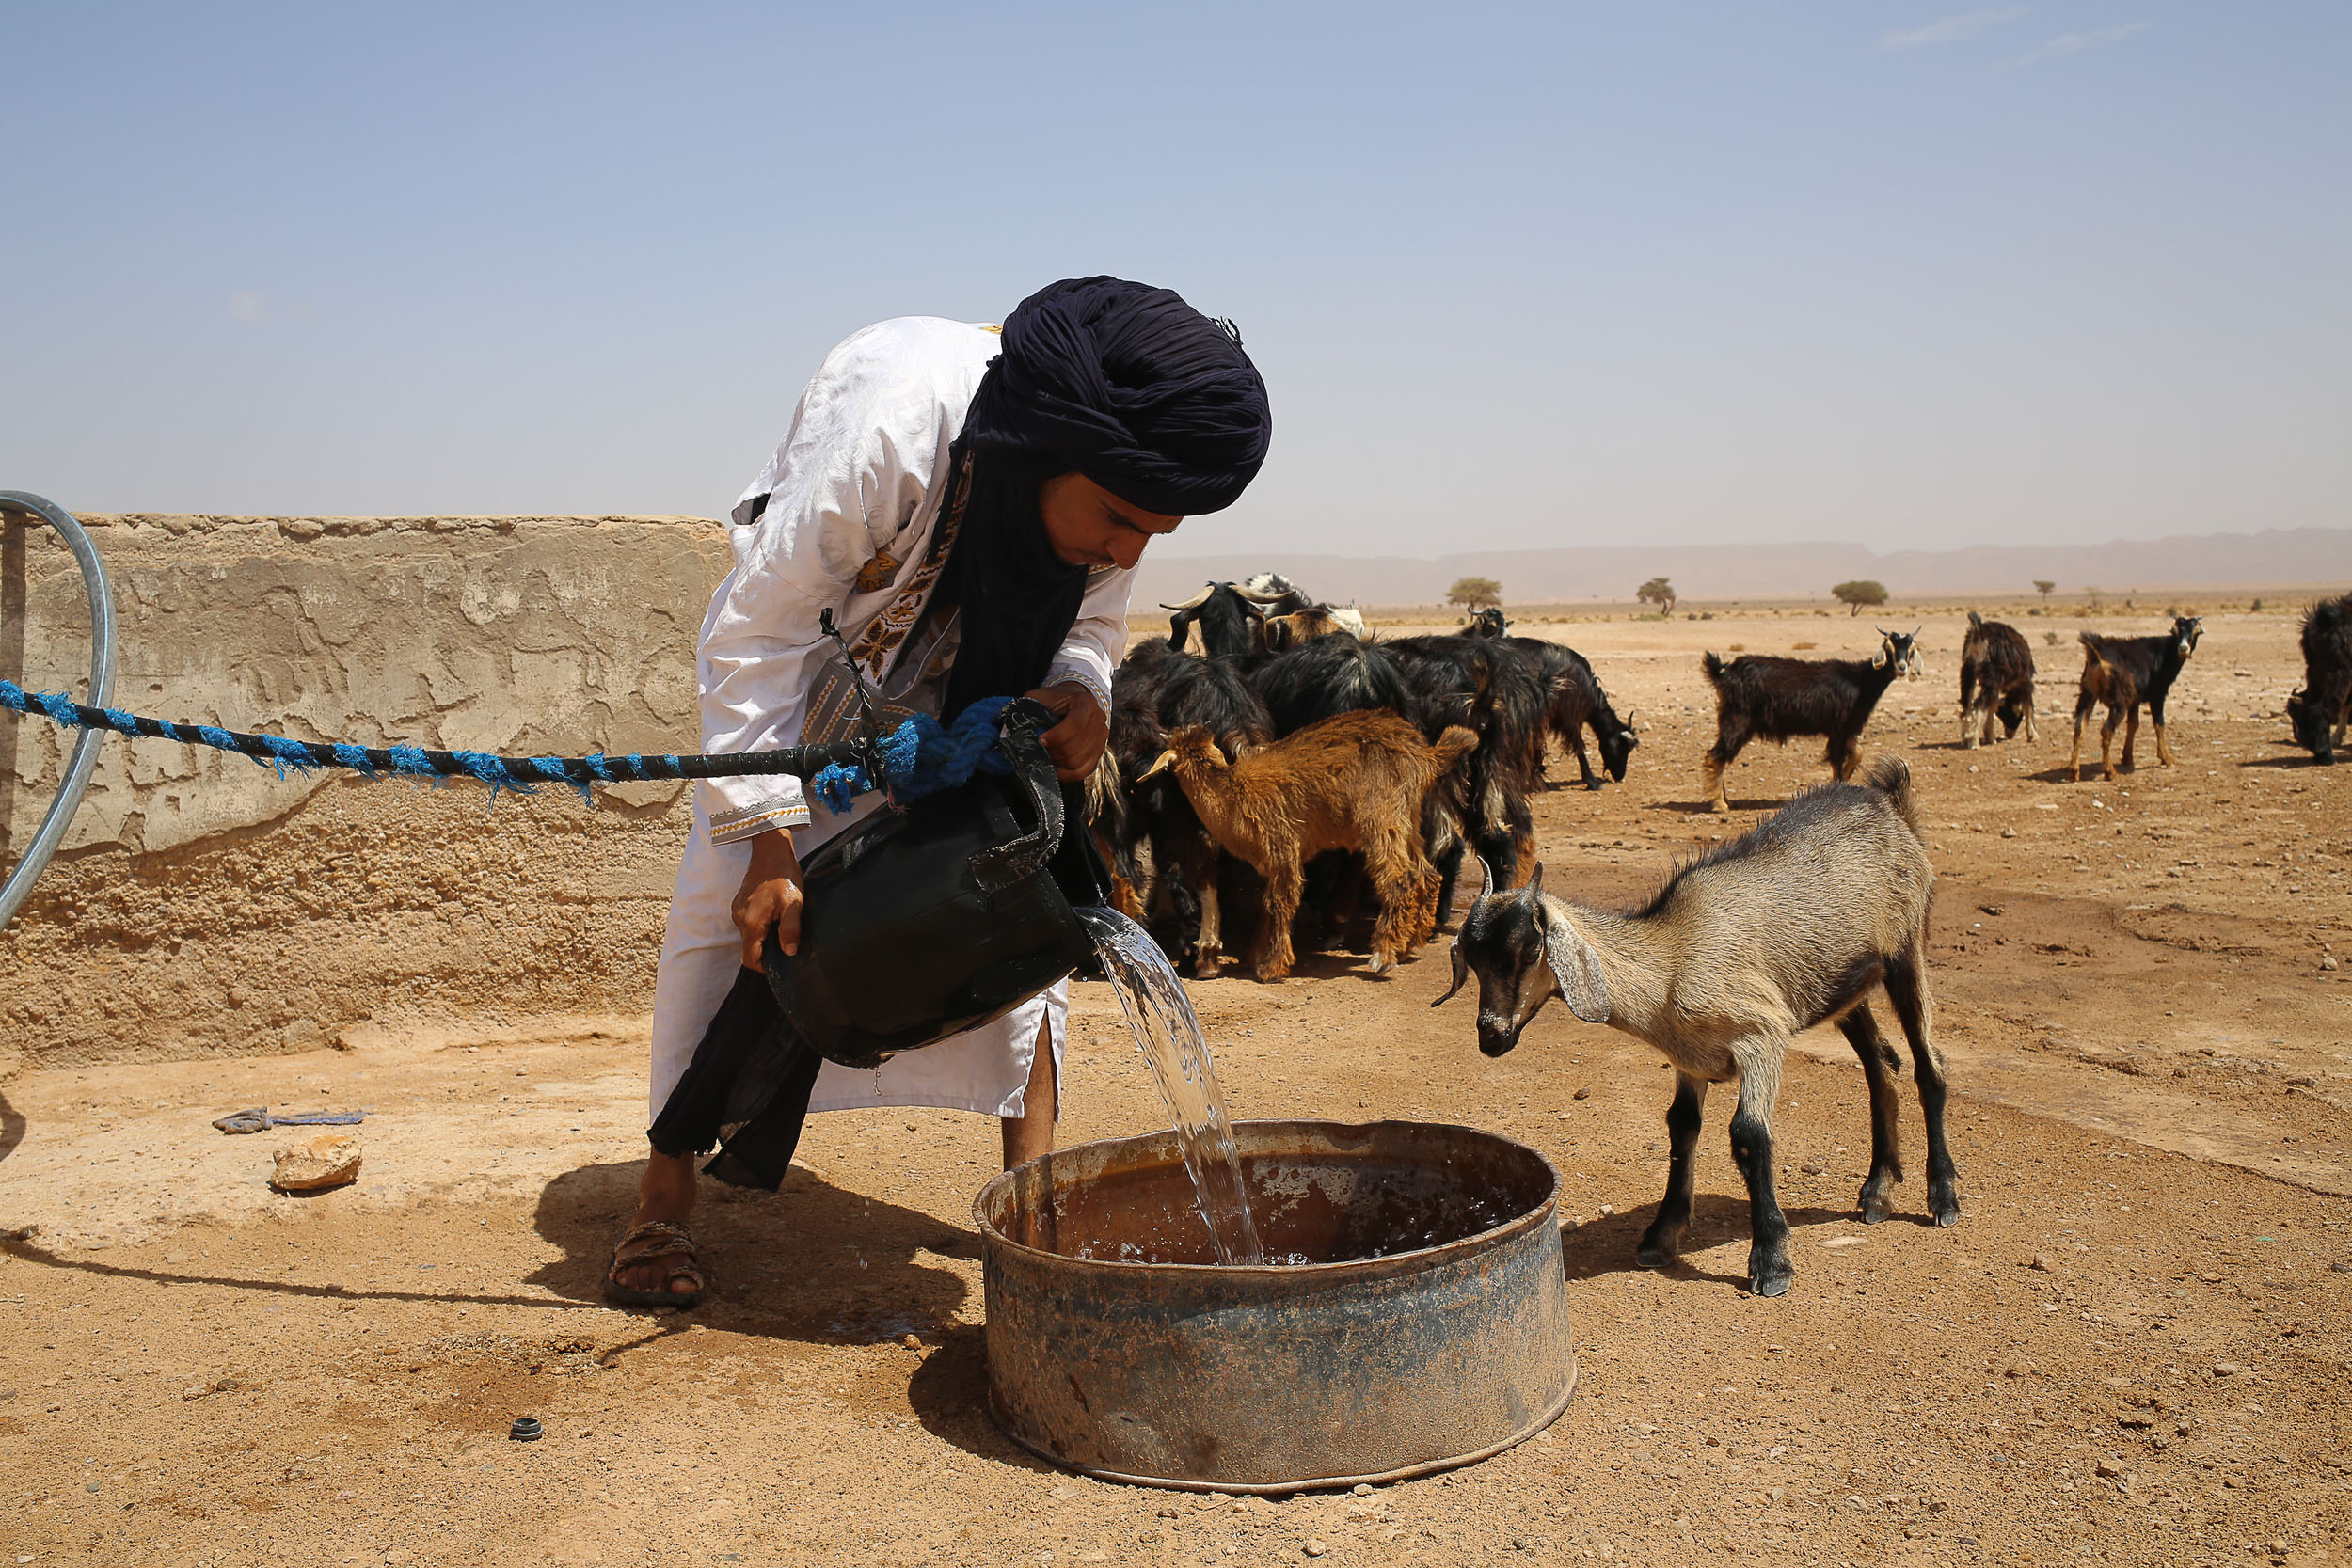 A man in traditional Moroccan desert-dweller dress with a while long shirt and black turban pours water into a round metal trough, with a goat standering over waiting to drink. There are goats and a dry, sandy desert scene in the background.